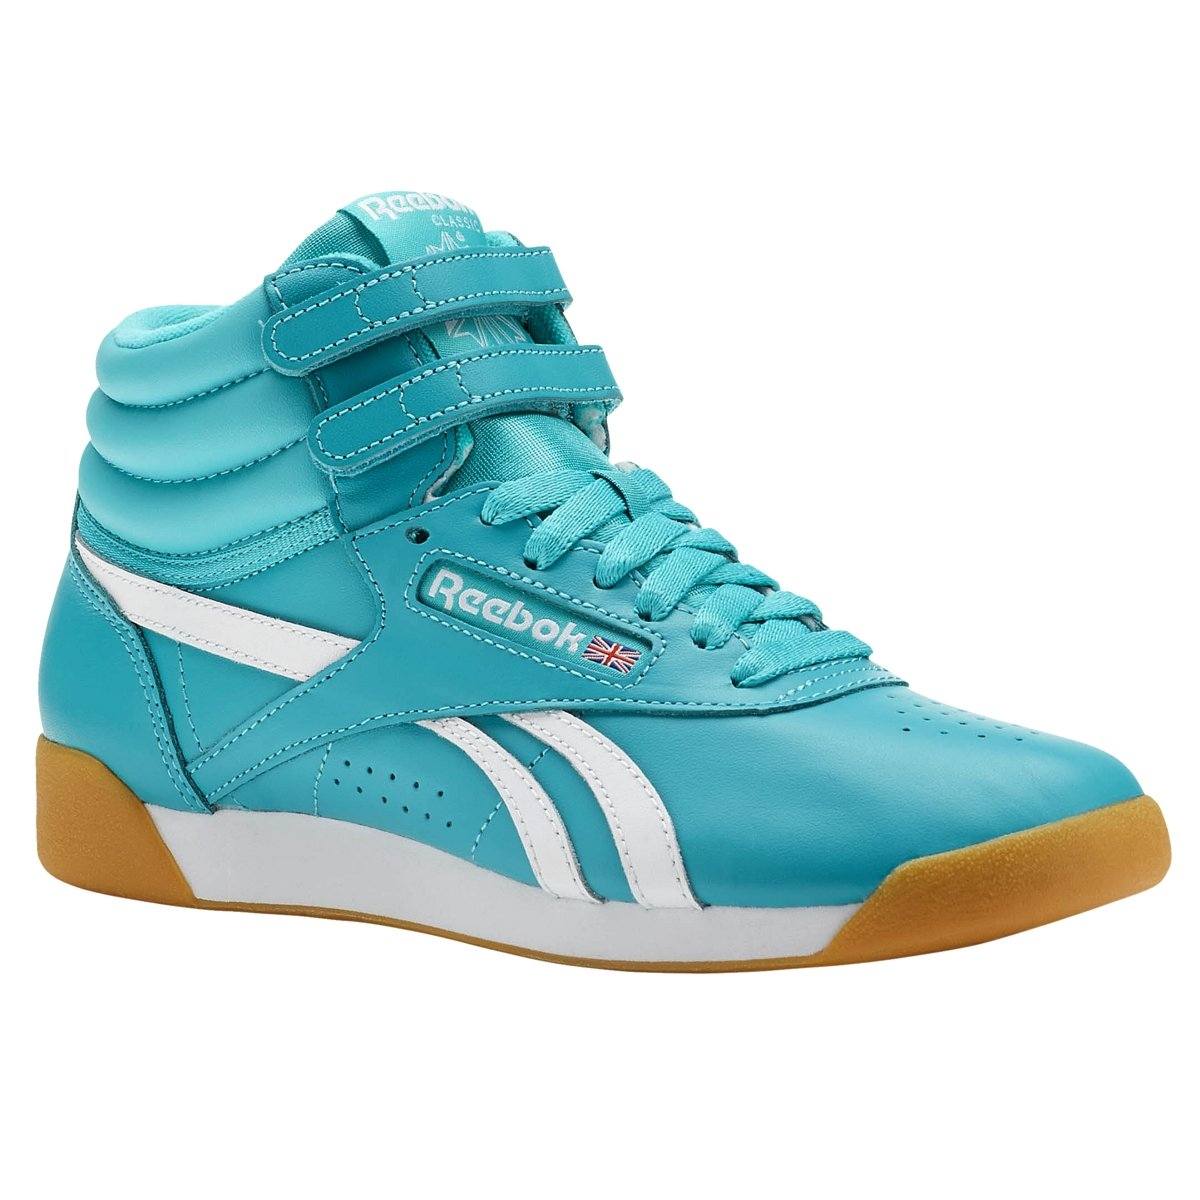 Reebok Freestyle Hi Suede Shoe Women's Casual 5 Solid Teal-White-Gum